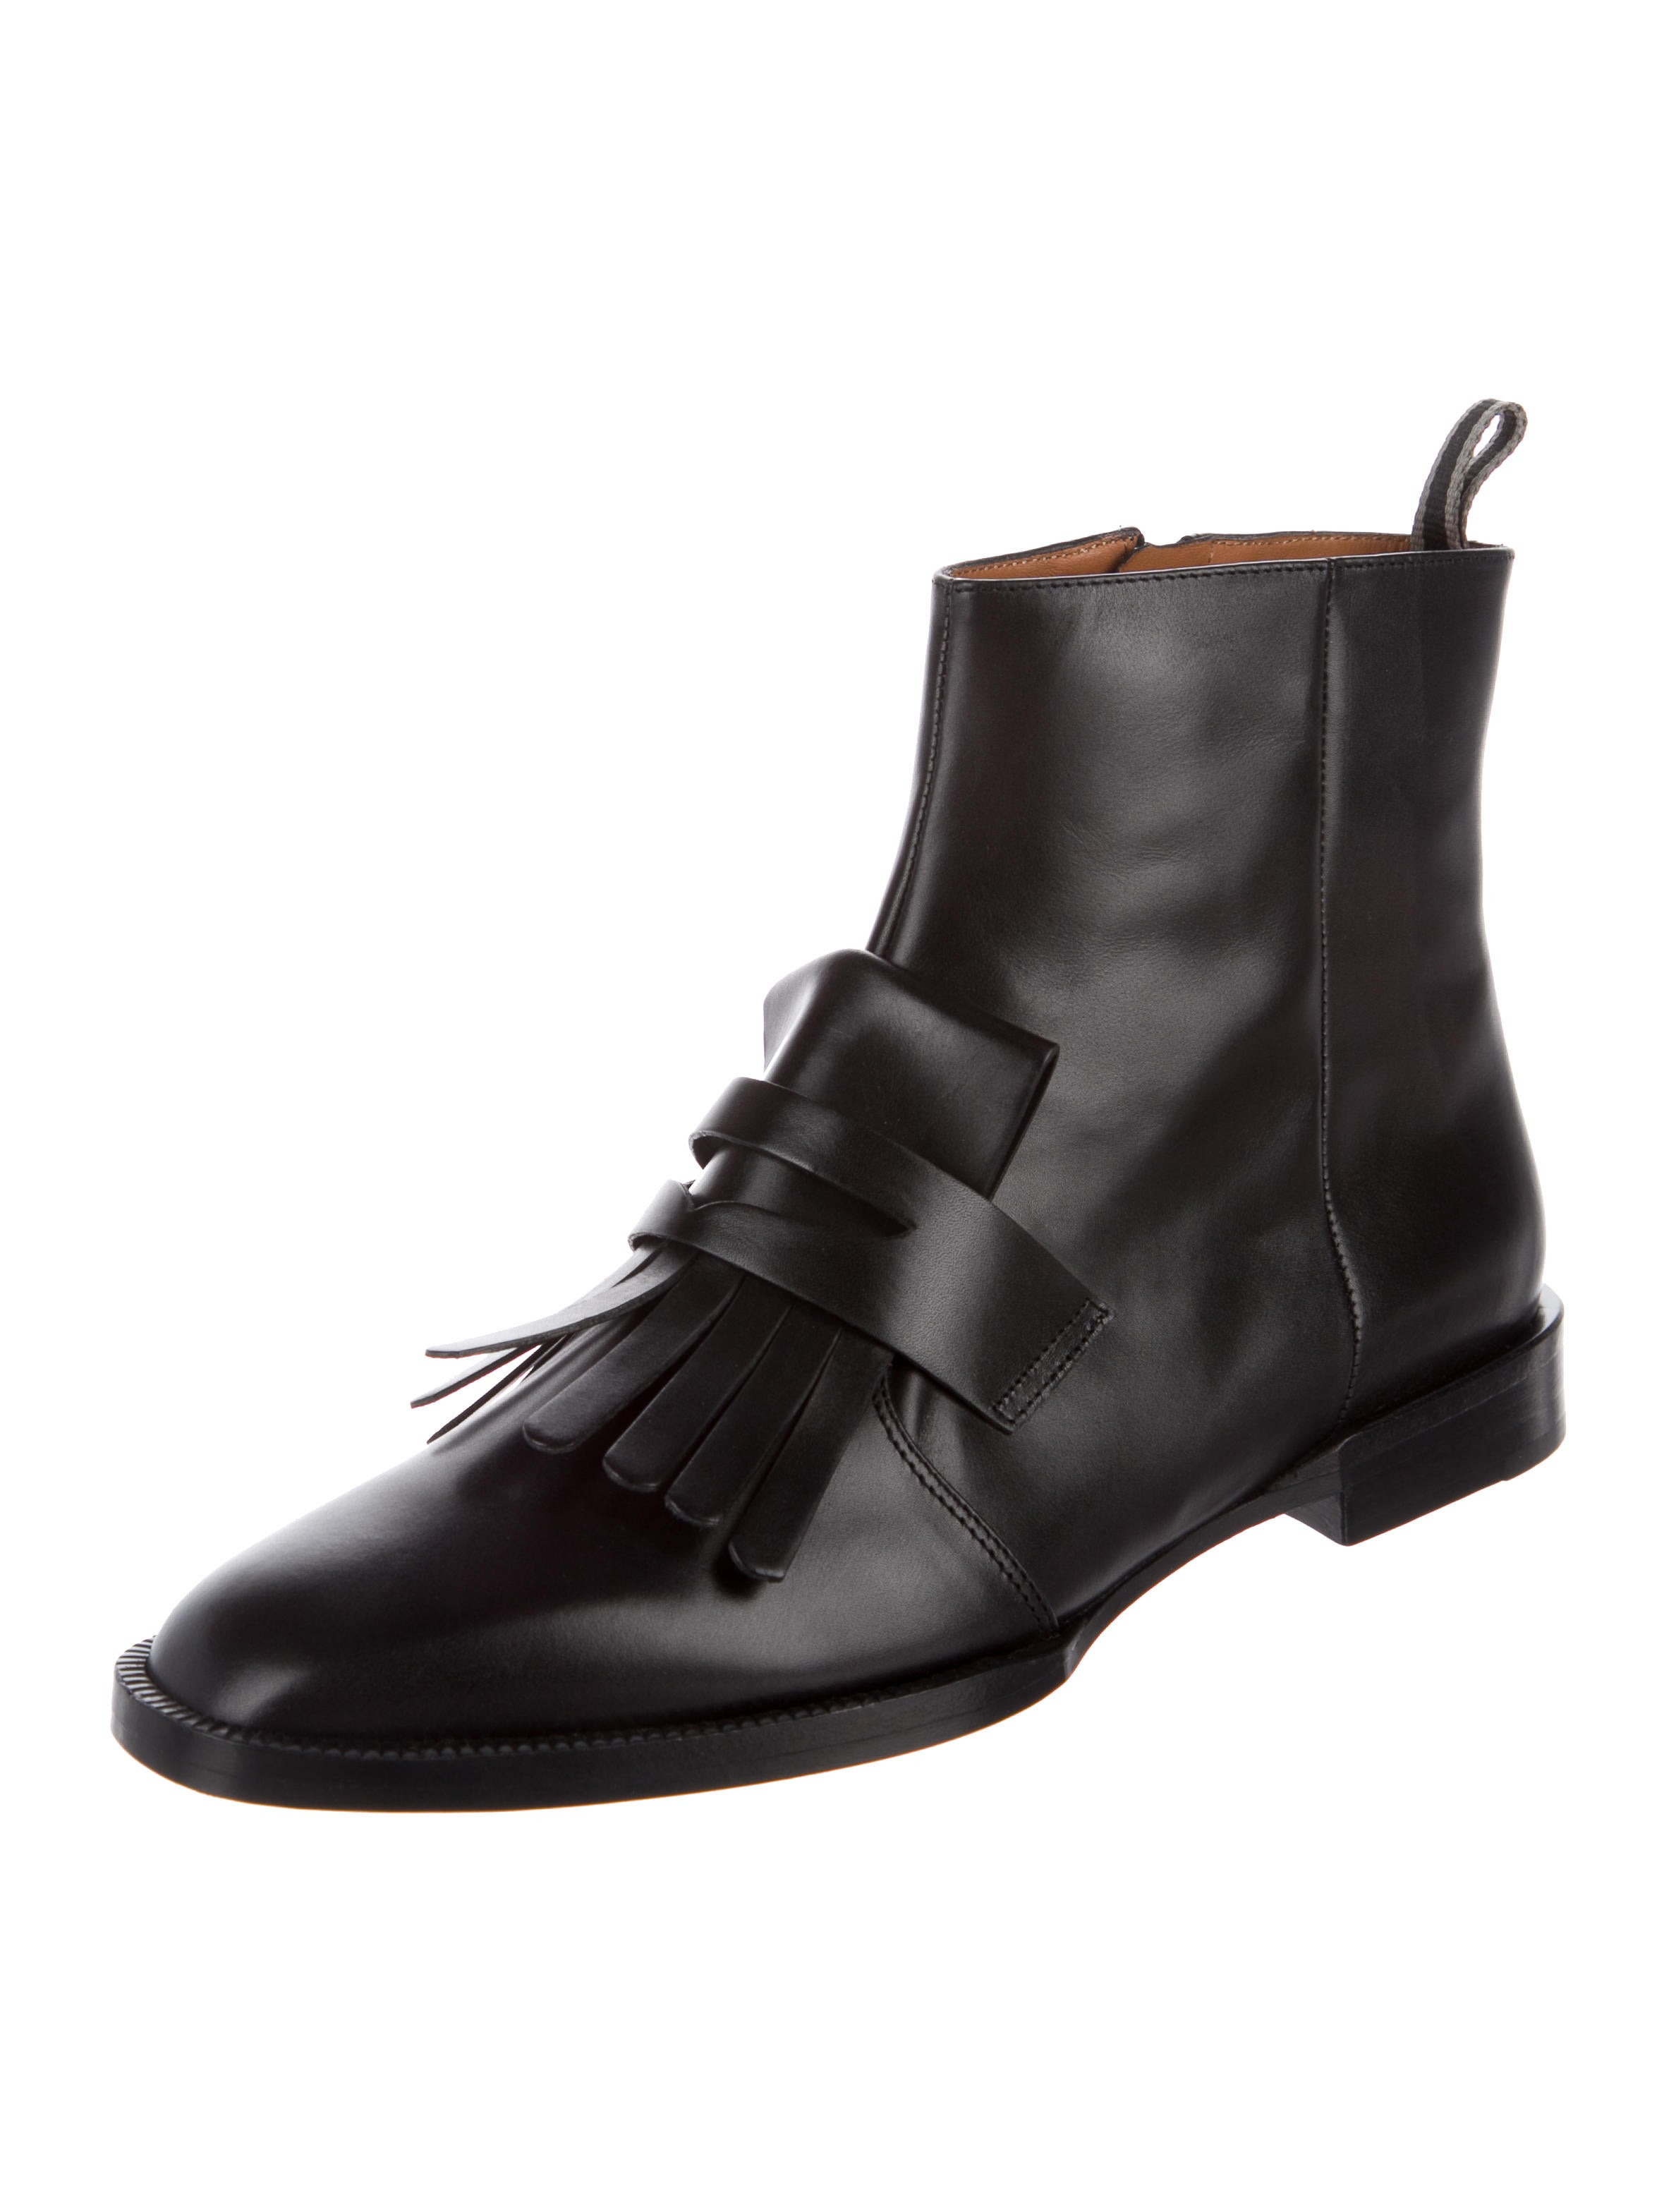 Robert Clergerie Yousc Kiltie Booties w/ Tags hot sale cheap price free shipping shop offer clearance low price cheap professional outlet get to buy 9ehFJ